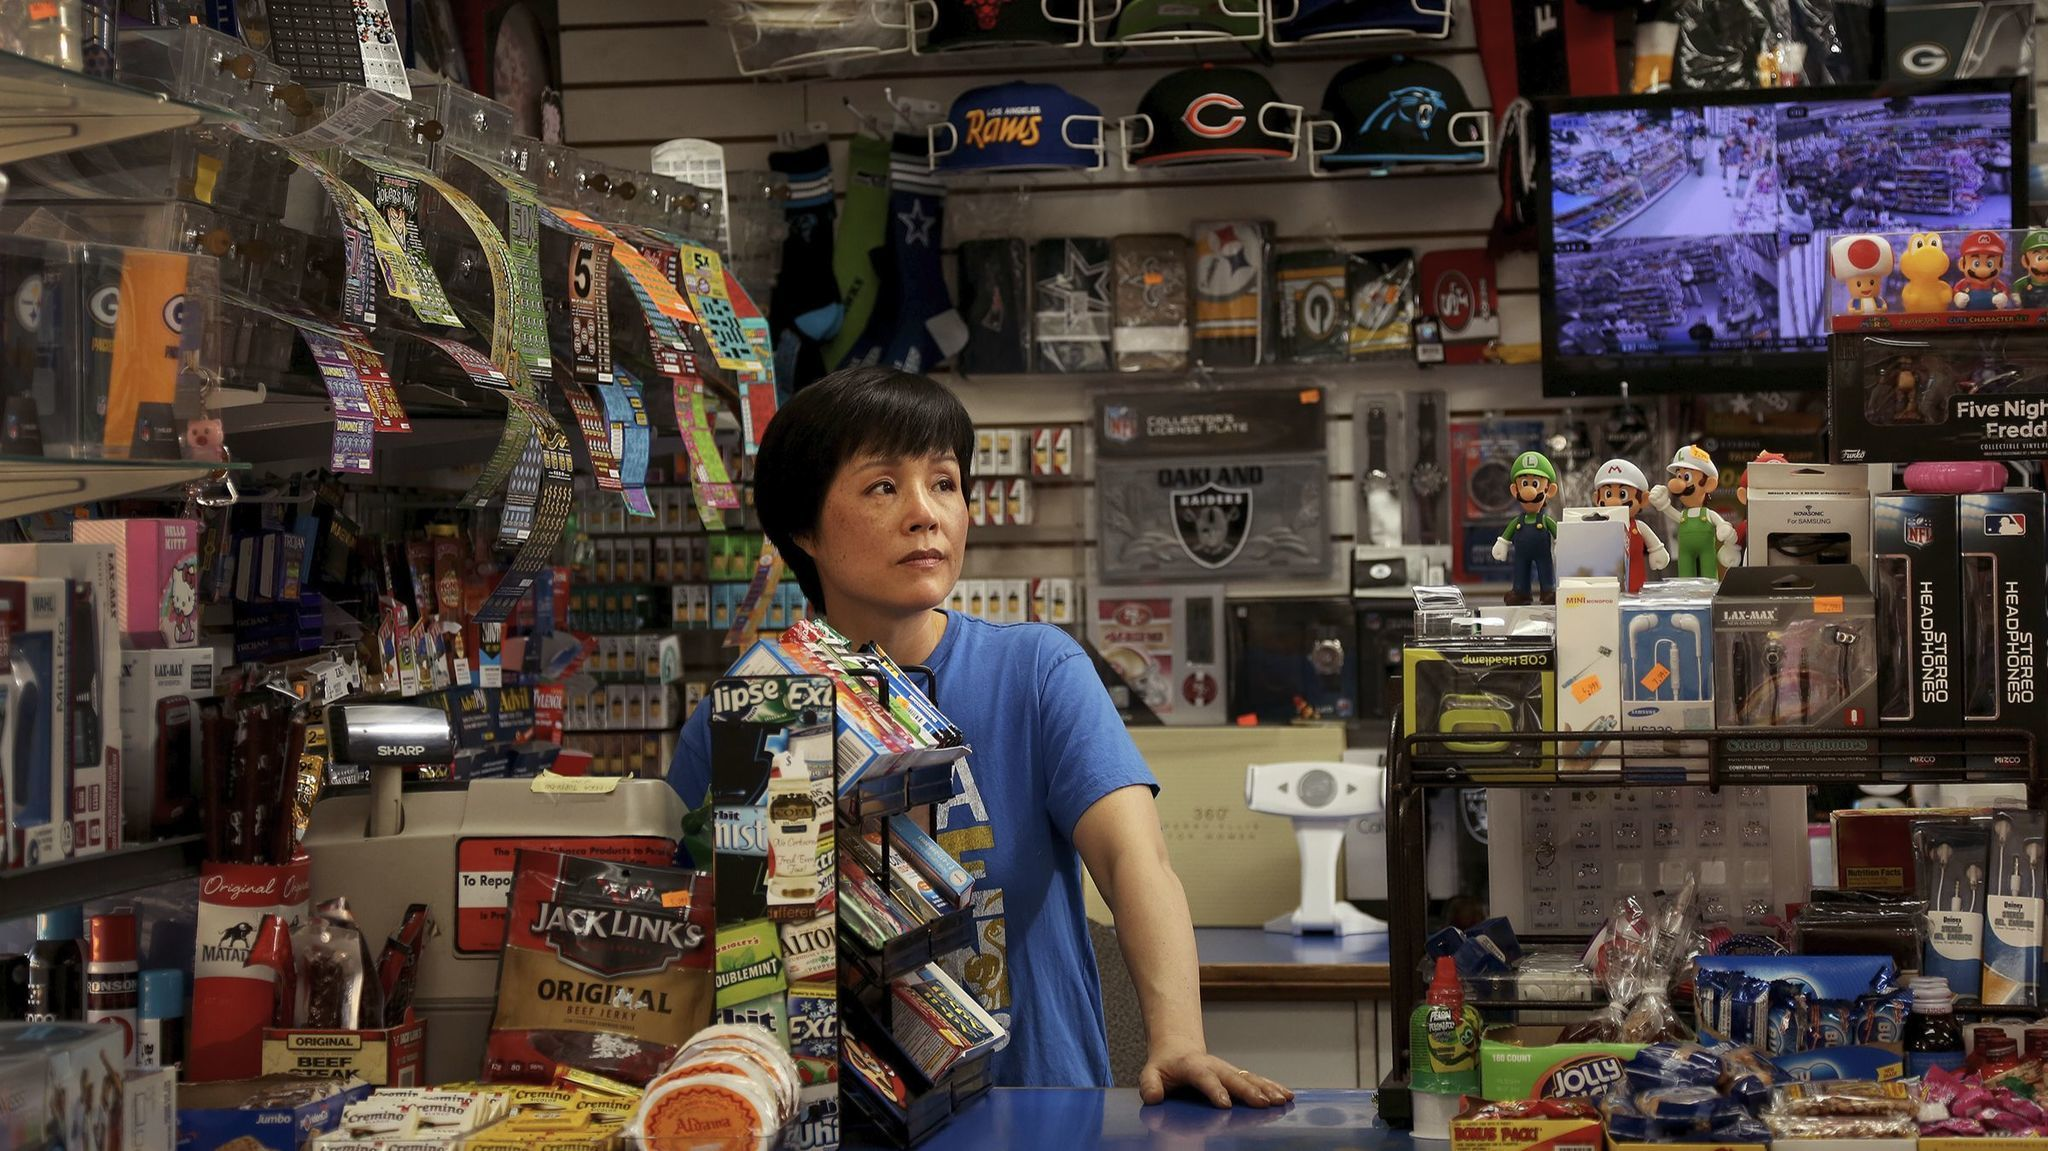 Sue Kim and her husband run a small convenience store along Cesar E. Chavez Avenue in Boyle Heights. The business has been in the family almost 40 years.